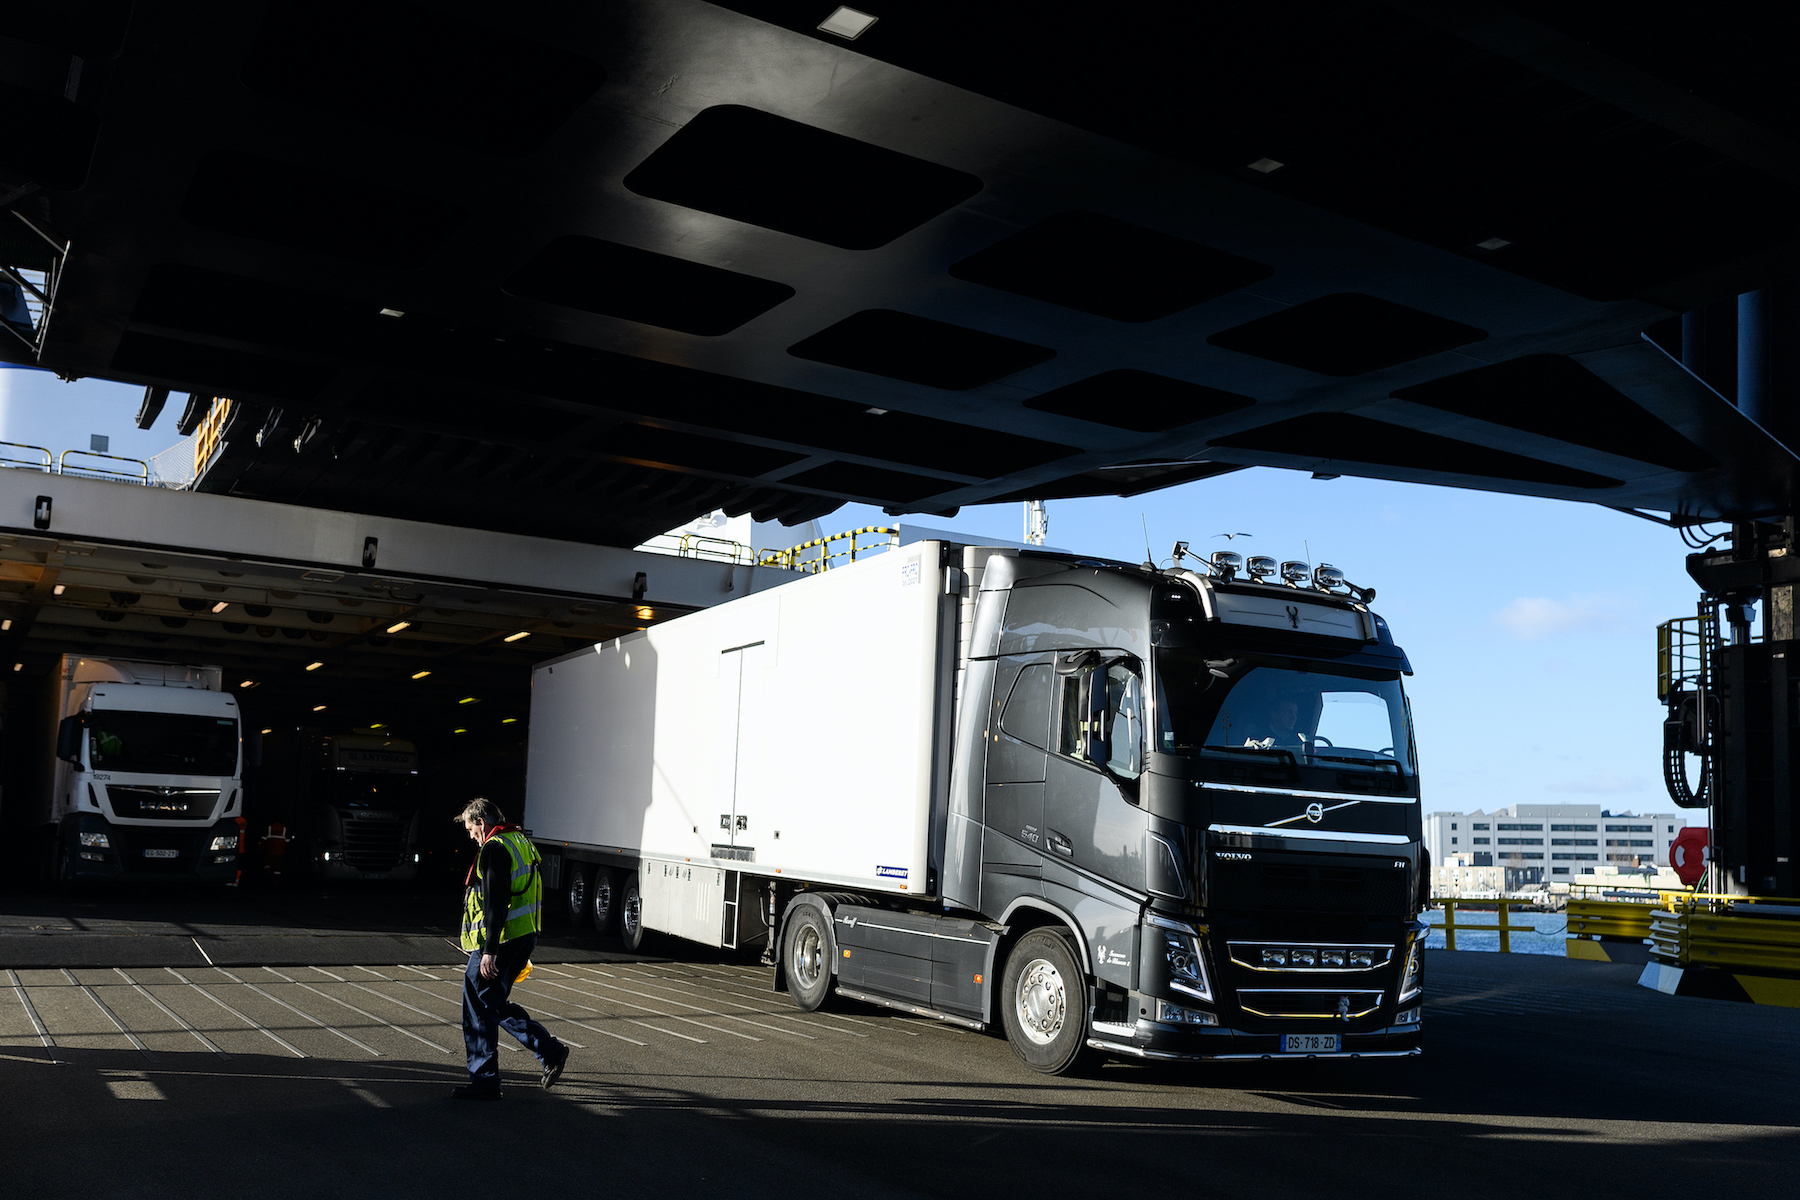 A truck leaves a ferry in Portsmouth, United Kingdom, on Jan. 8, 2019